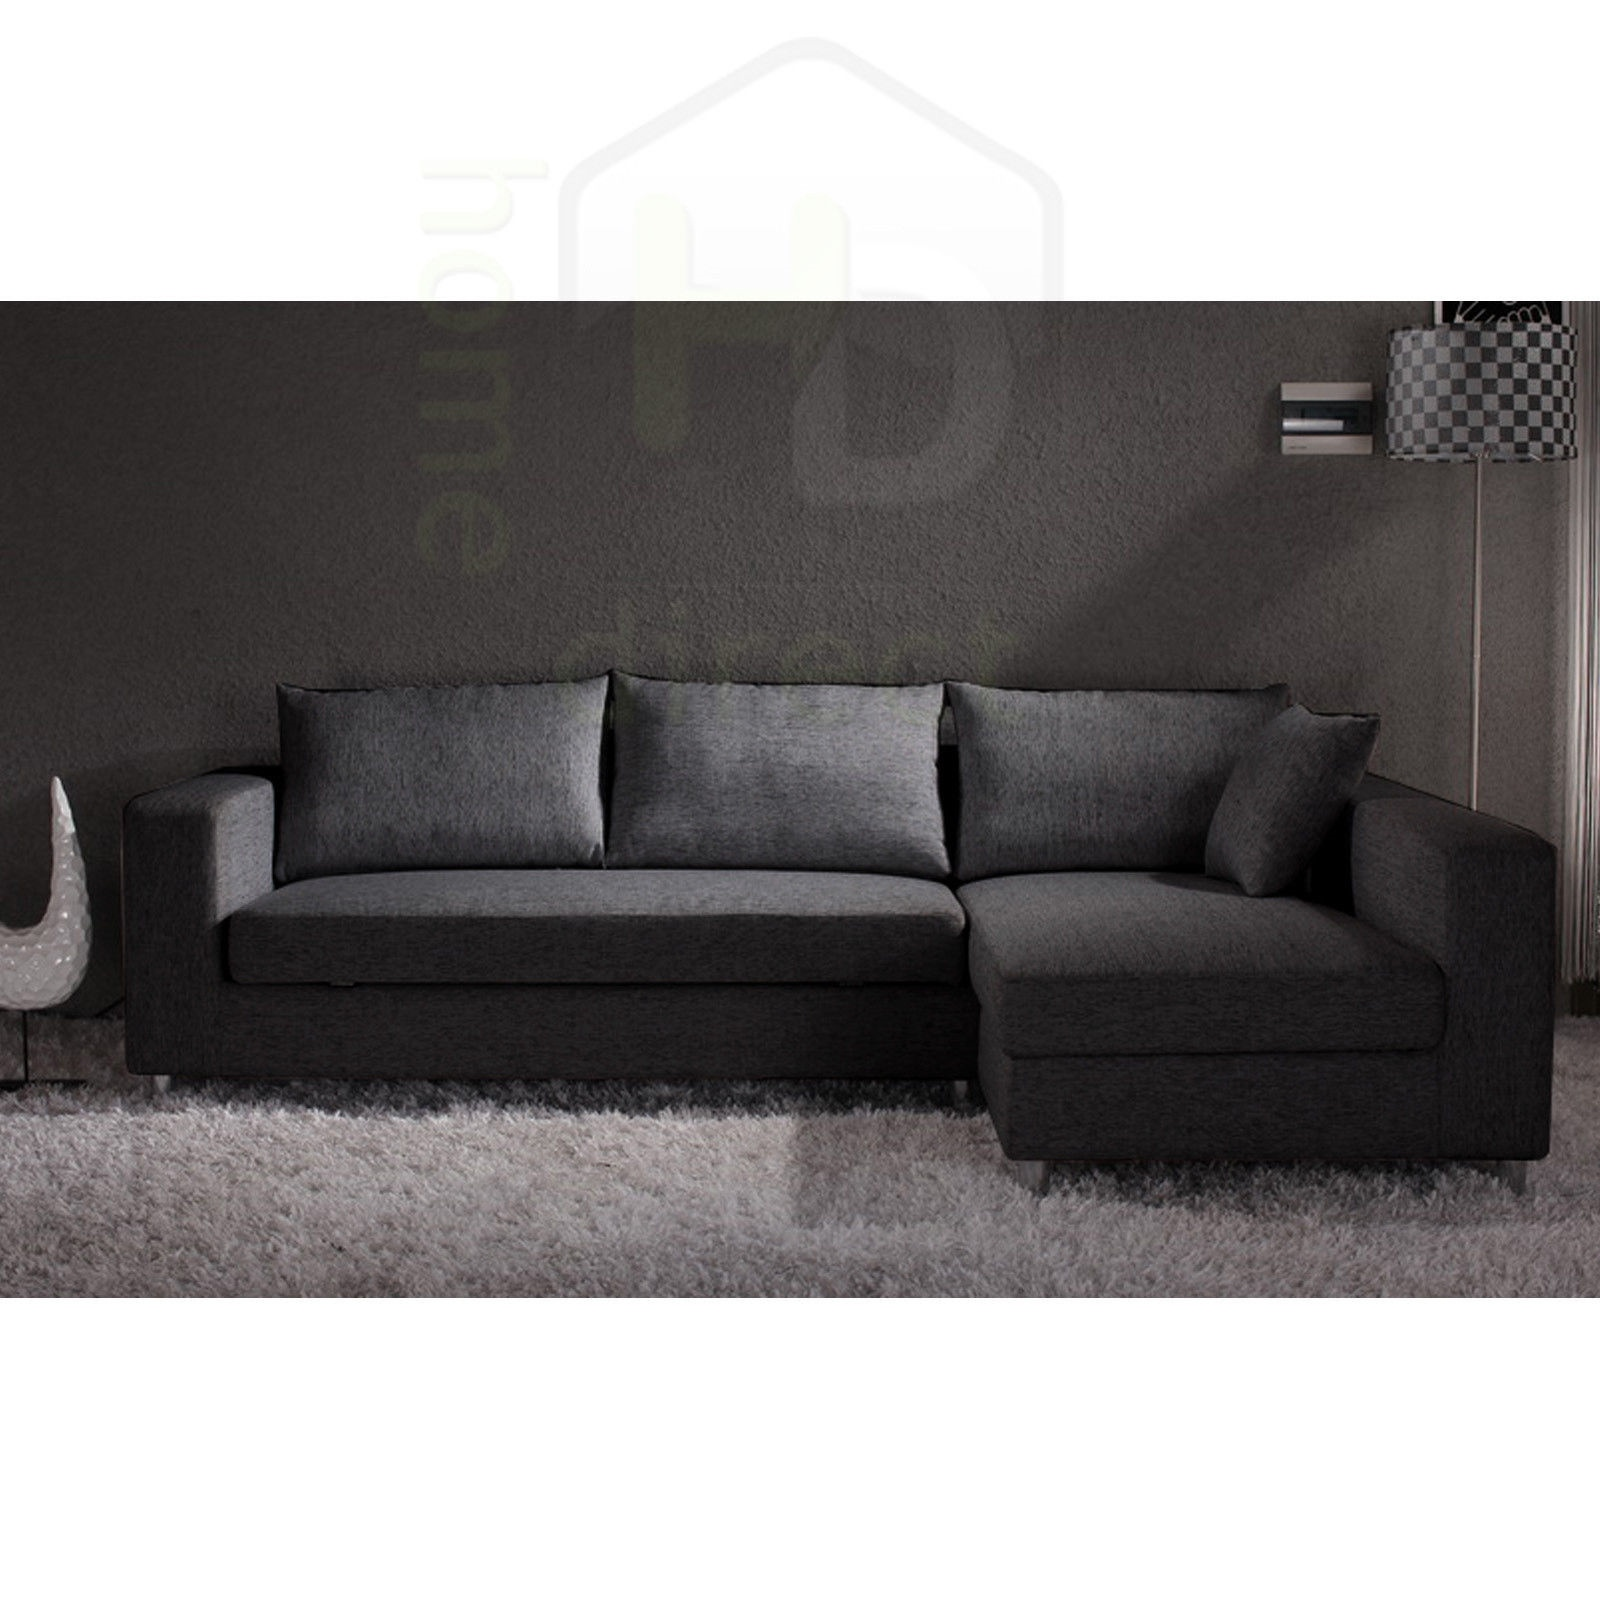 lounge suite sofa bed largo woodland kyra modern retro fabric couch chaise